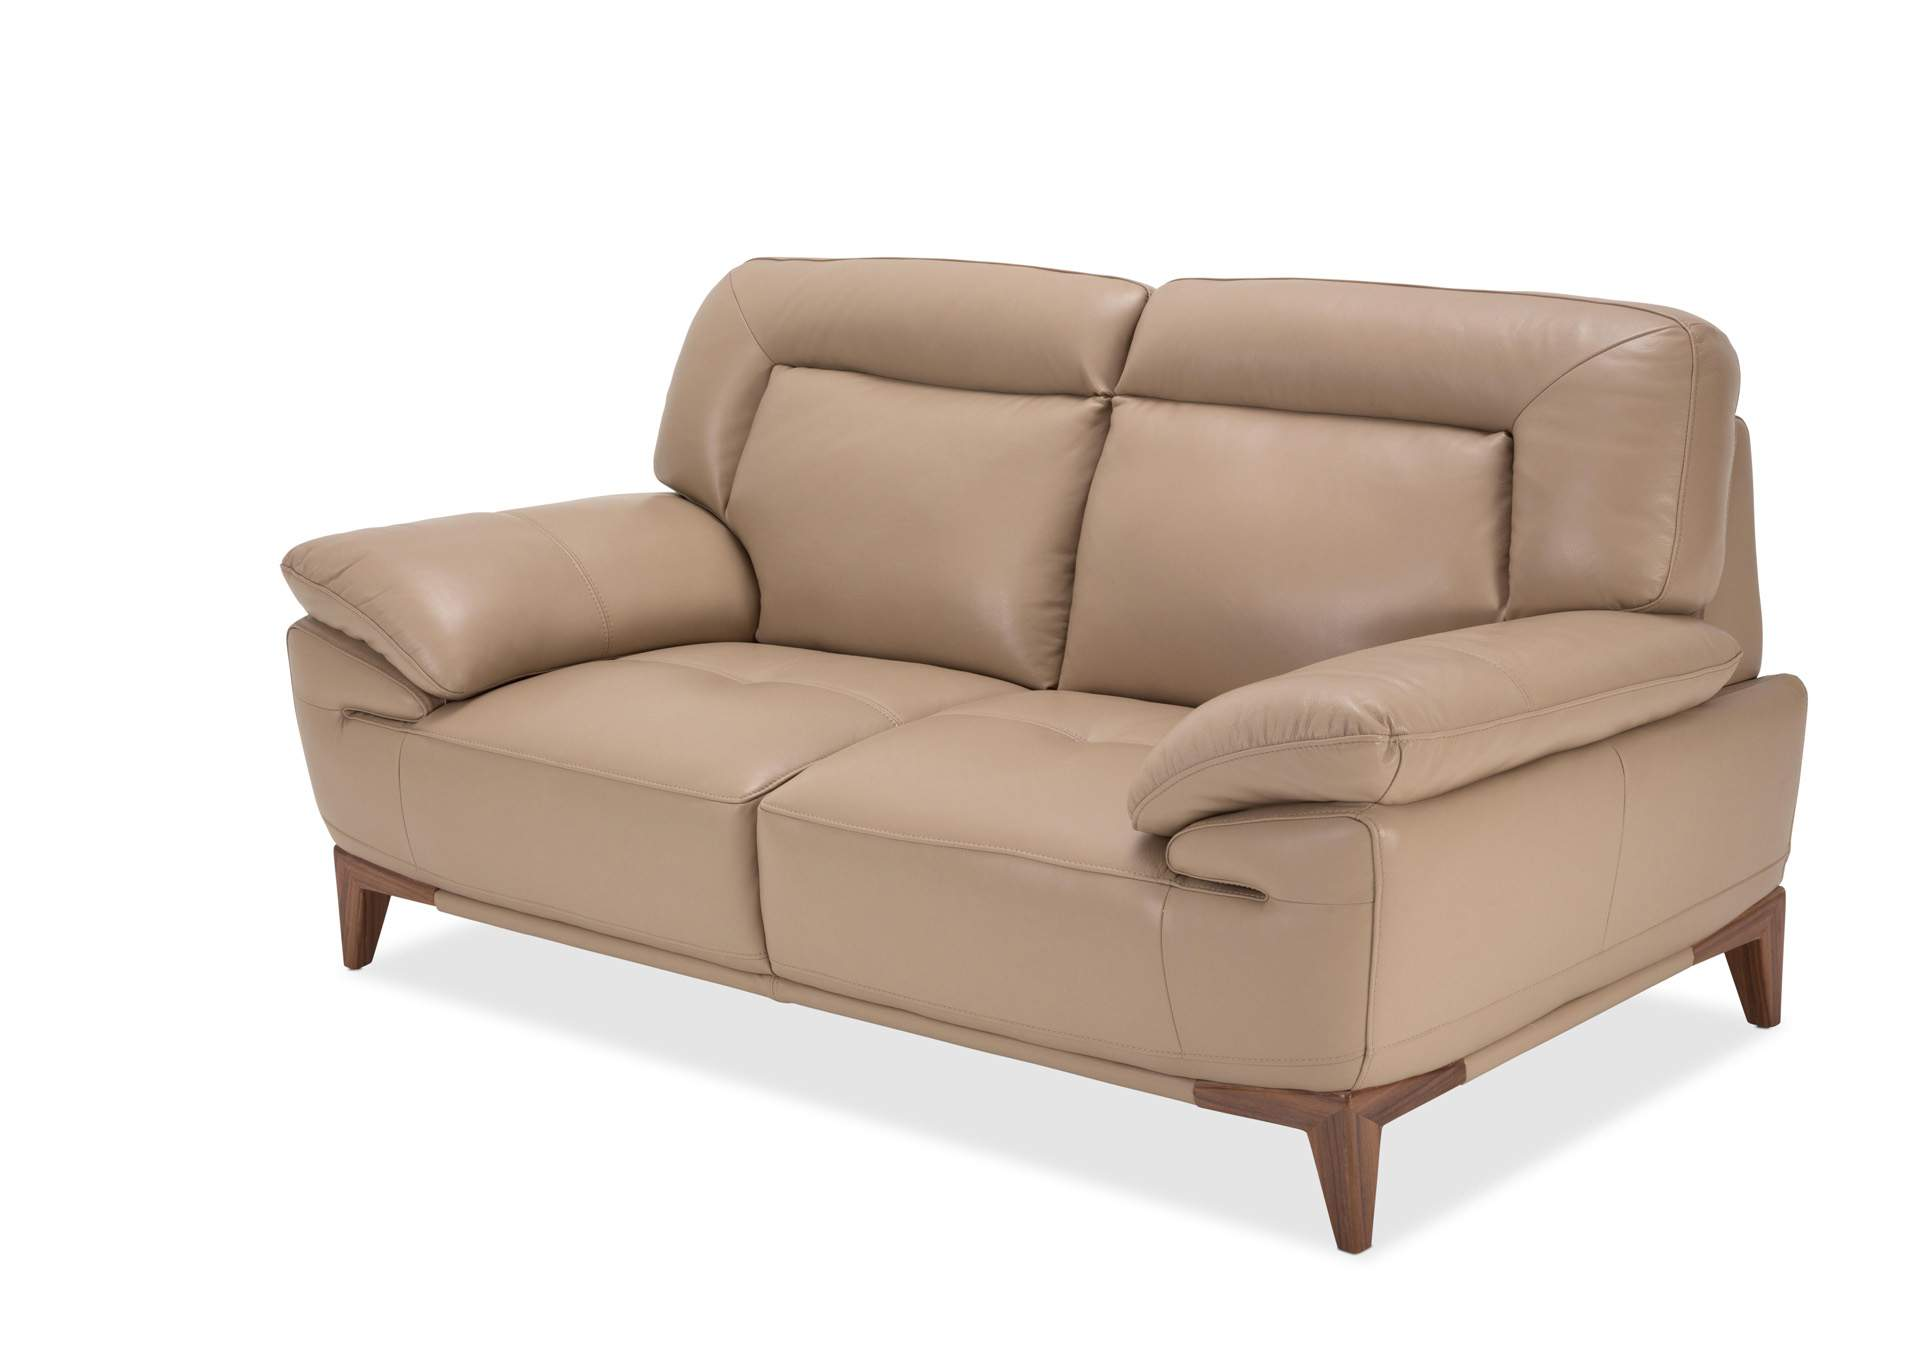 Nulook Furniture Turano Taupe Leather Loveseat